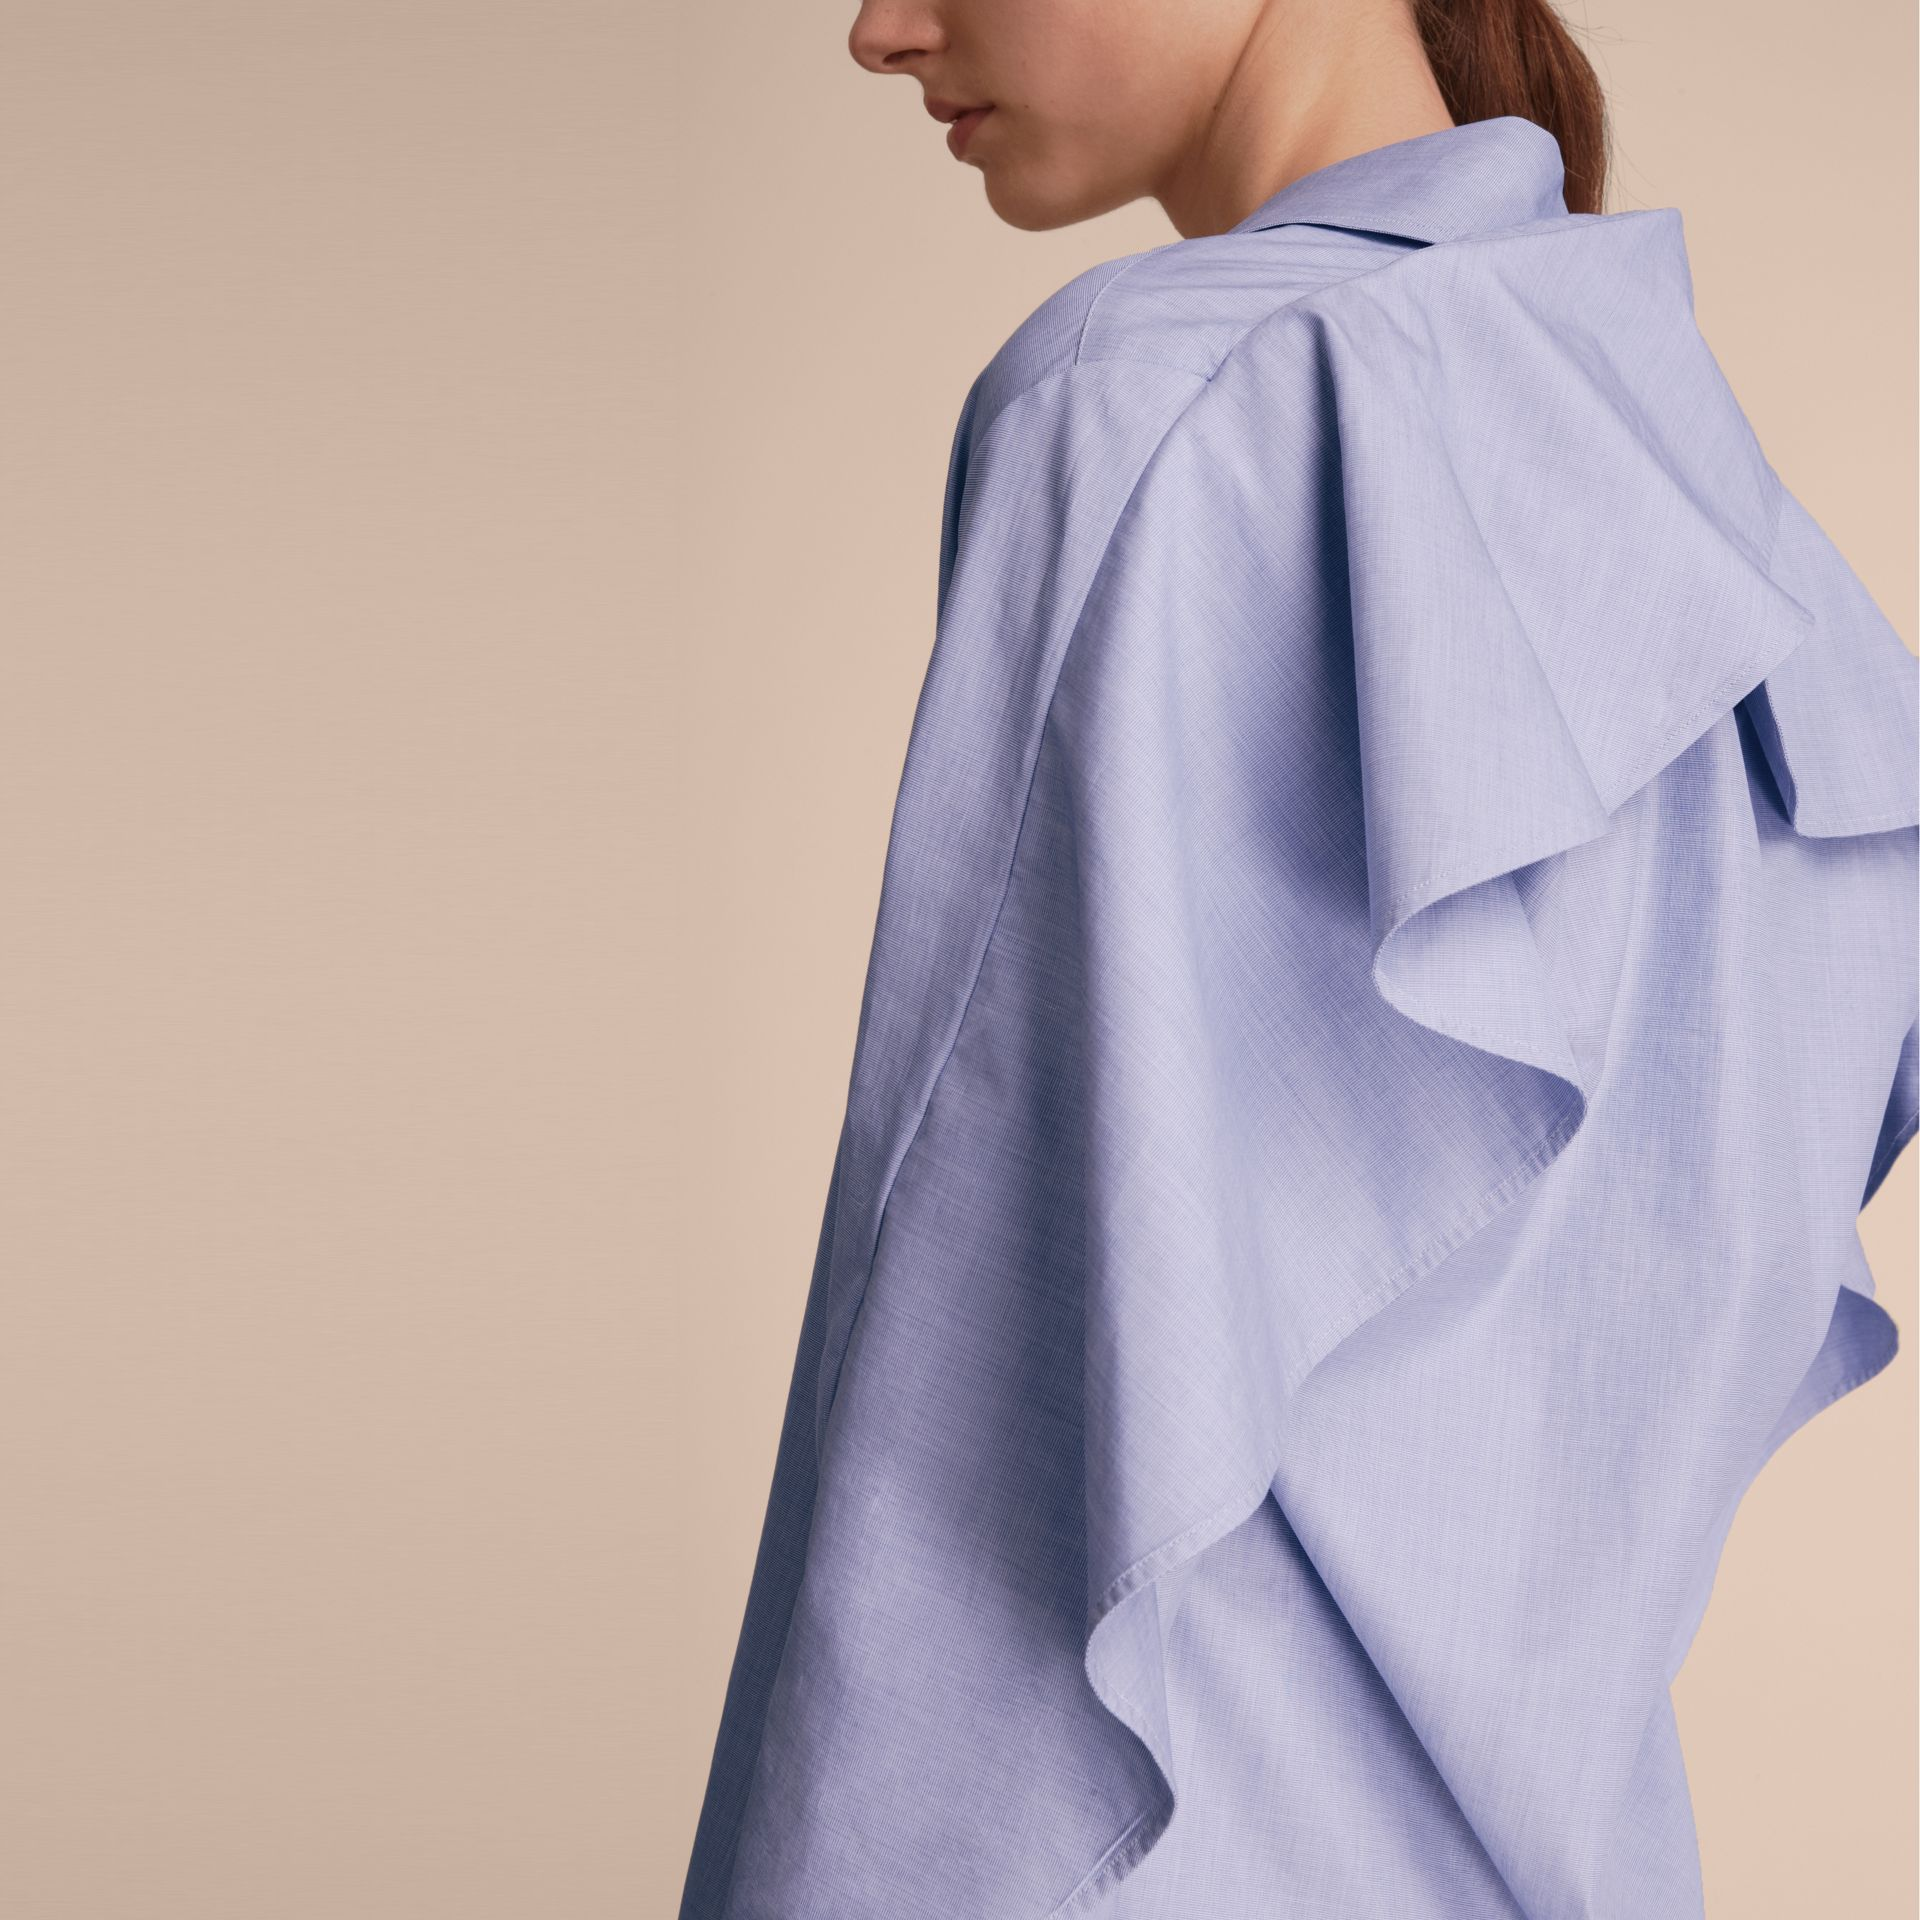 Ruffle Detail Cotton Shirt - gallery image 6